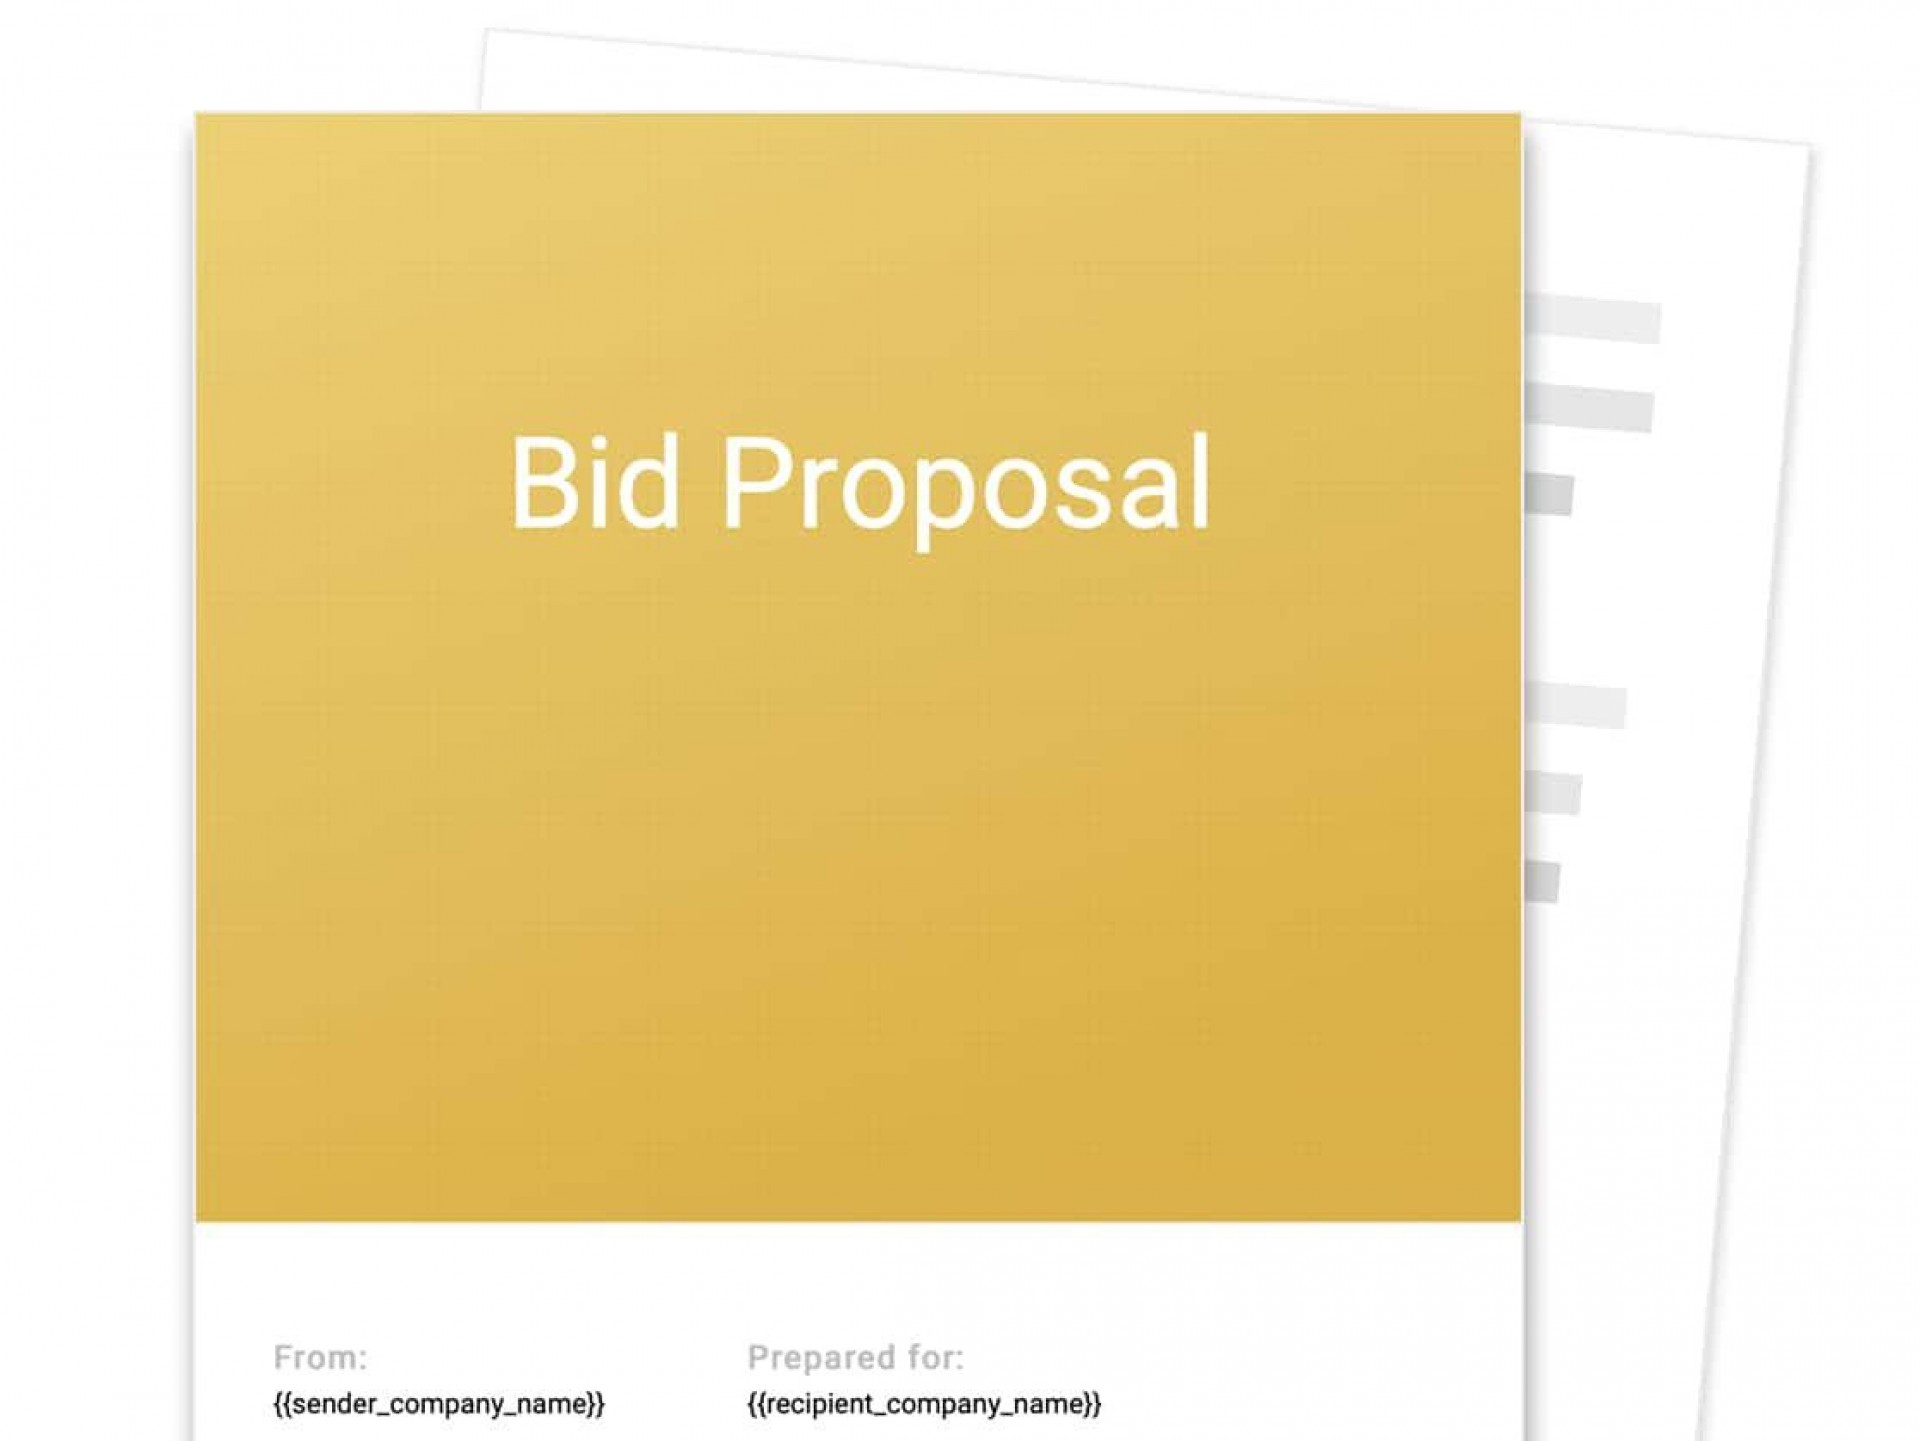 001 Awful Contractor Proposal Template Pdf Sample  Construction Bid Upwork Free1920